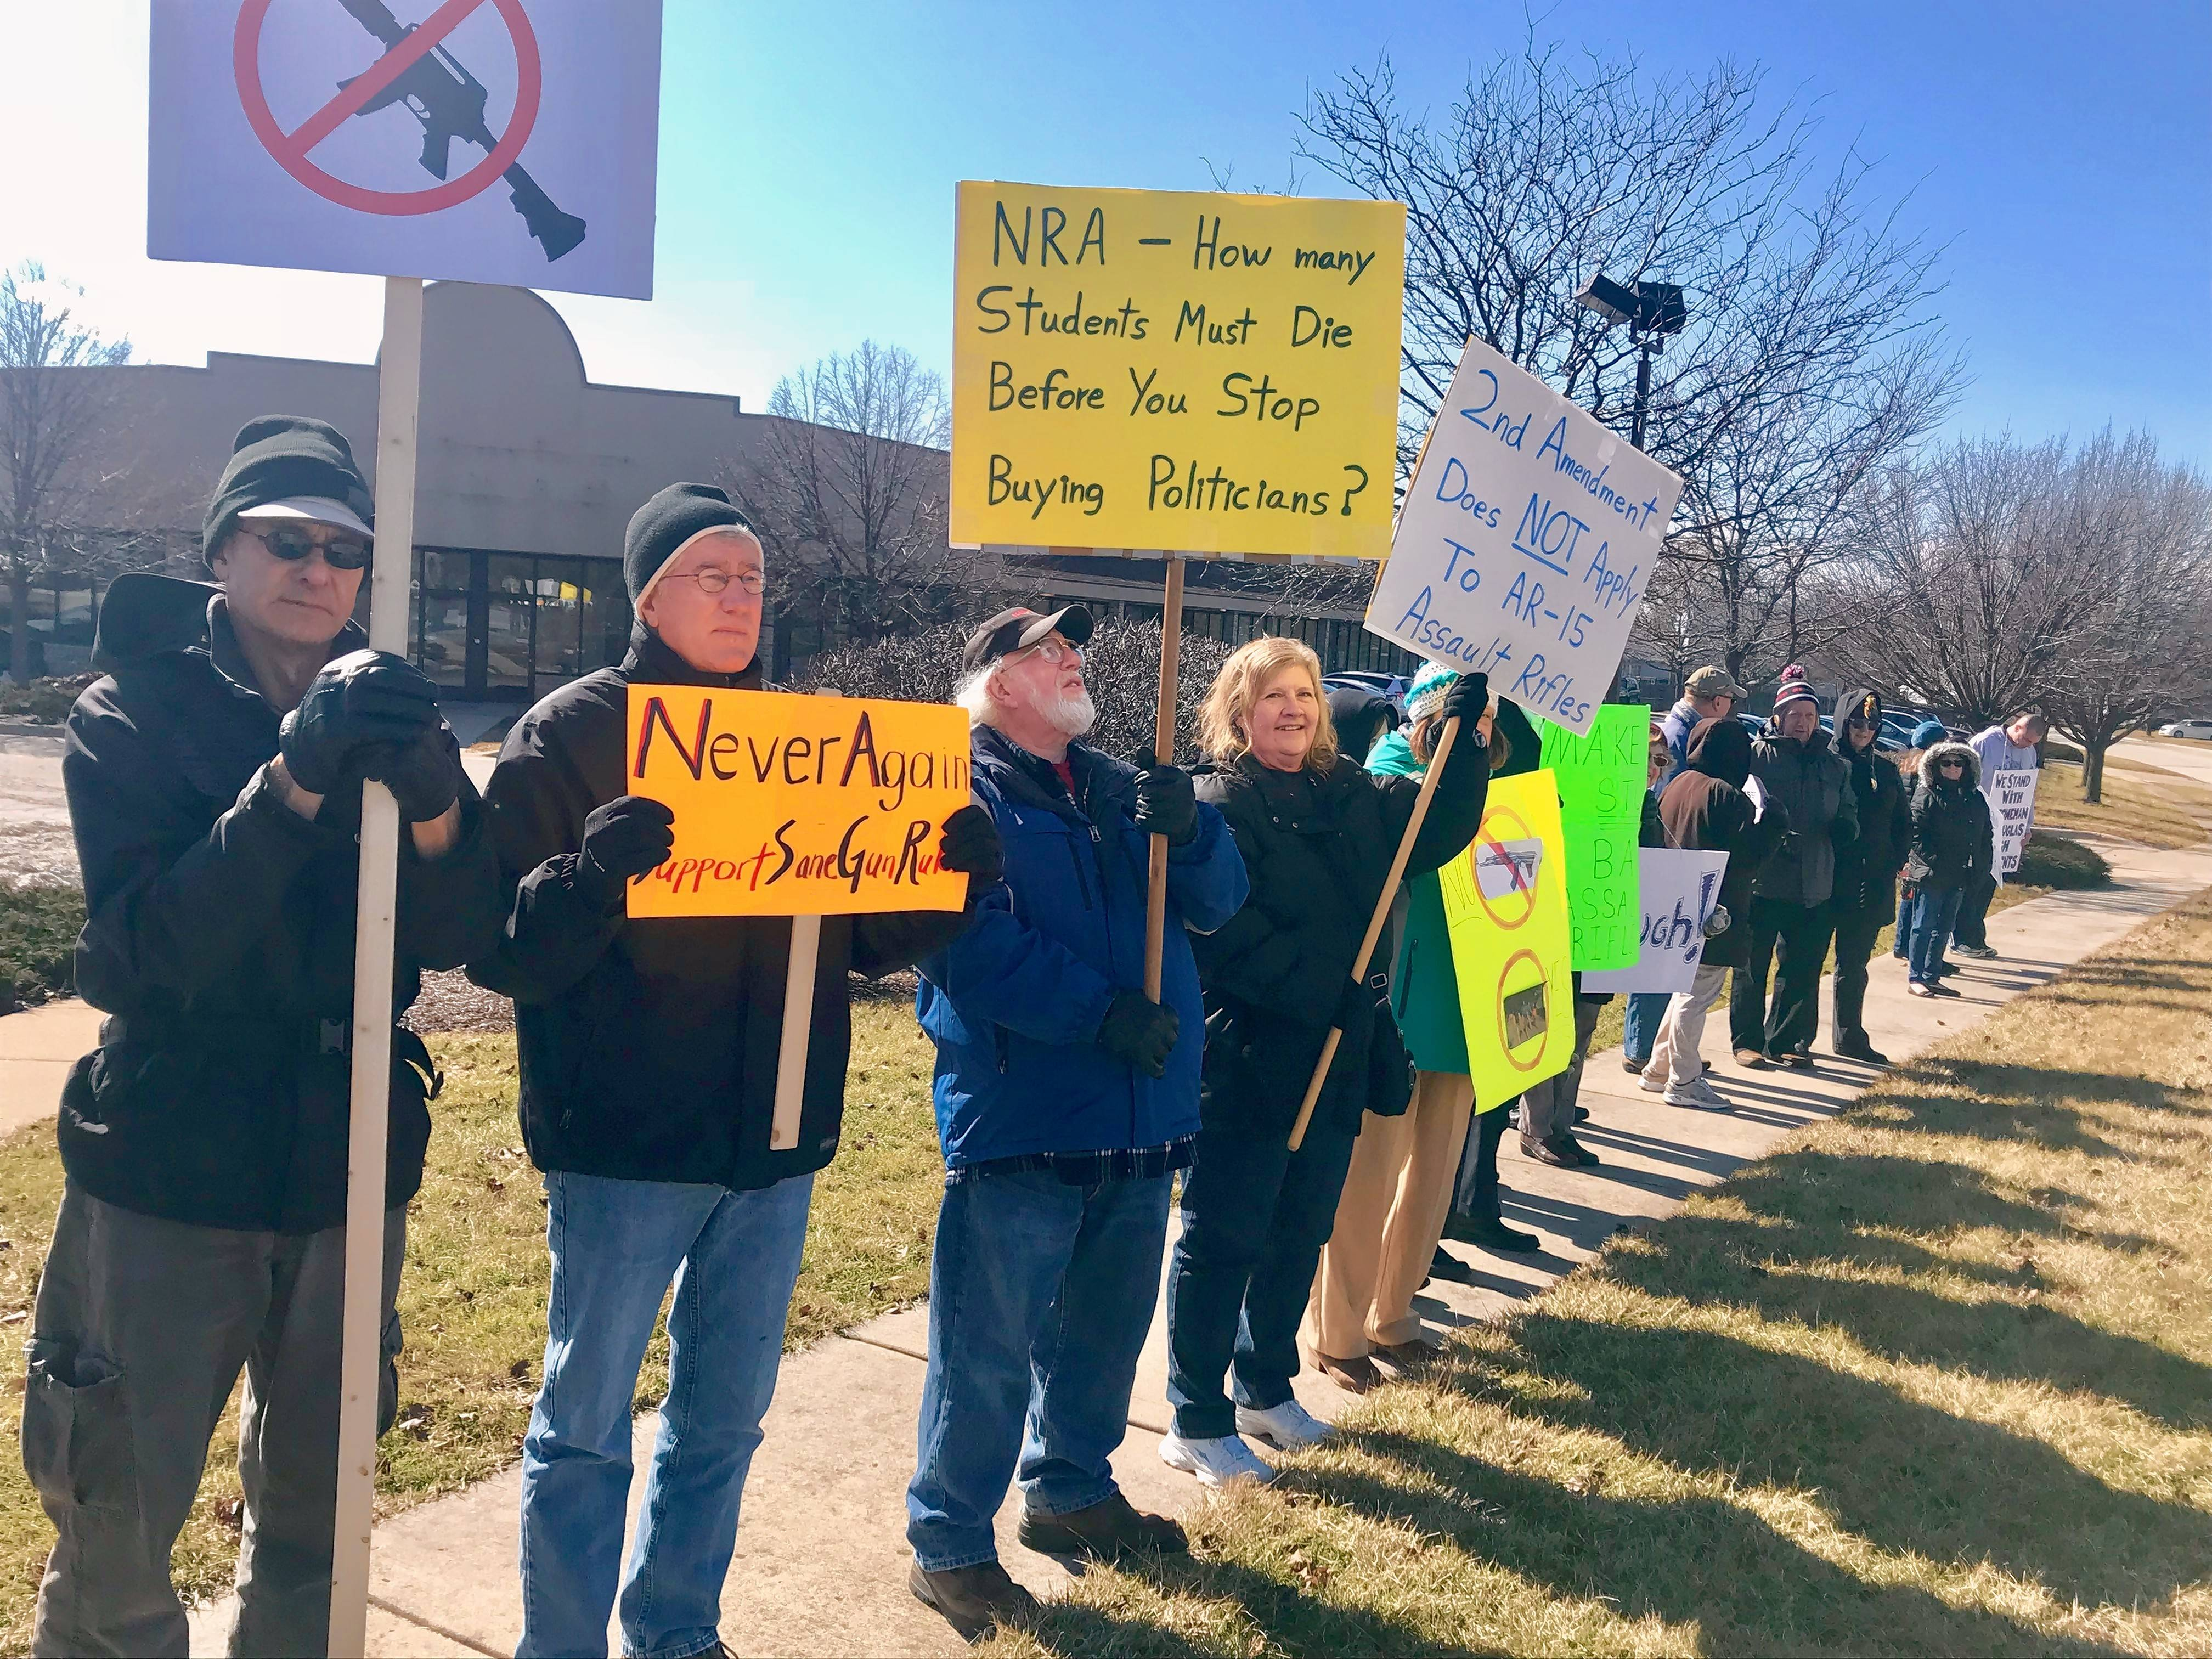 Activists stand along McLean Boulevard and College Green Drive in Elgin to protest assault weapons and encourage legislators to make policy changes.